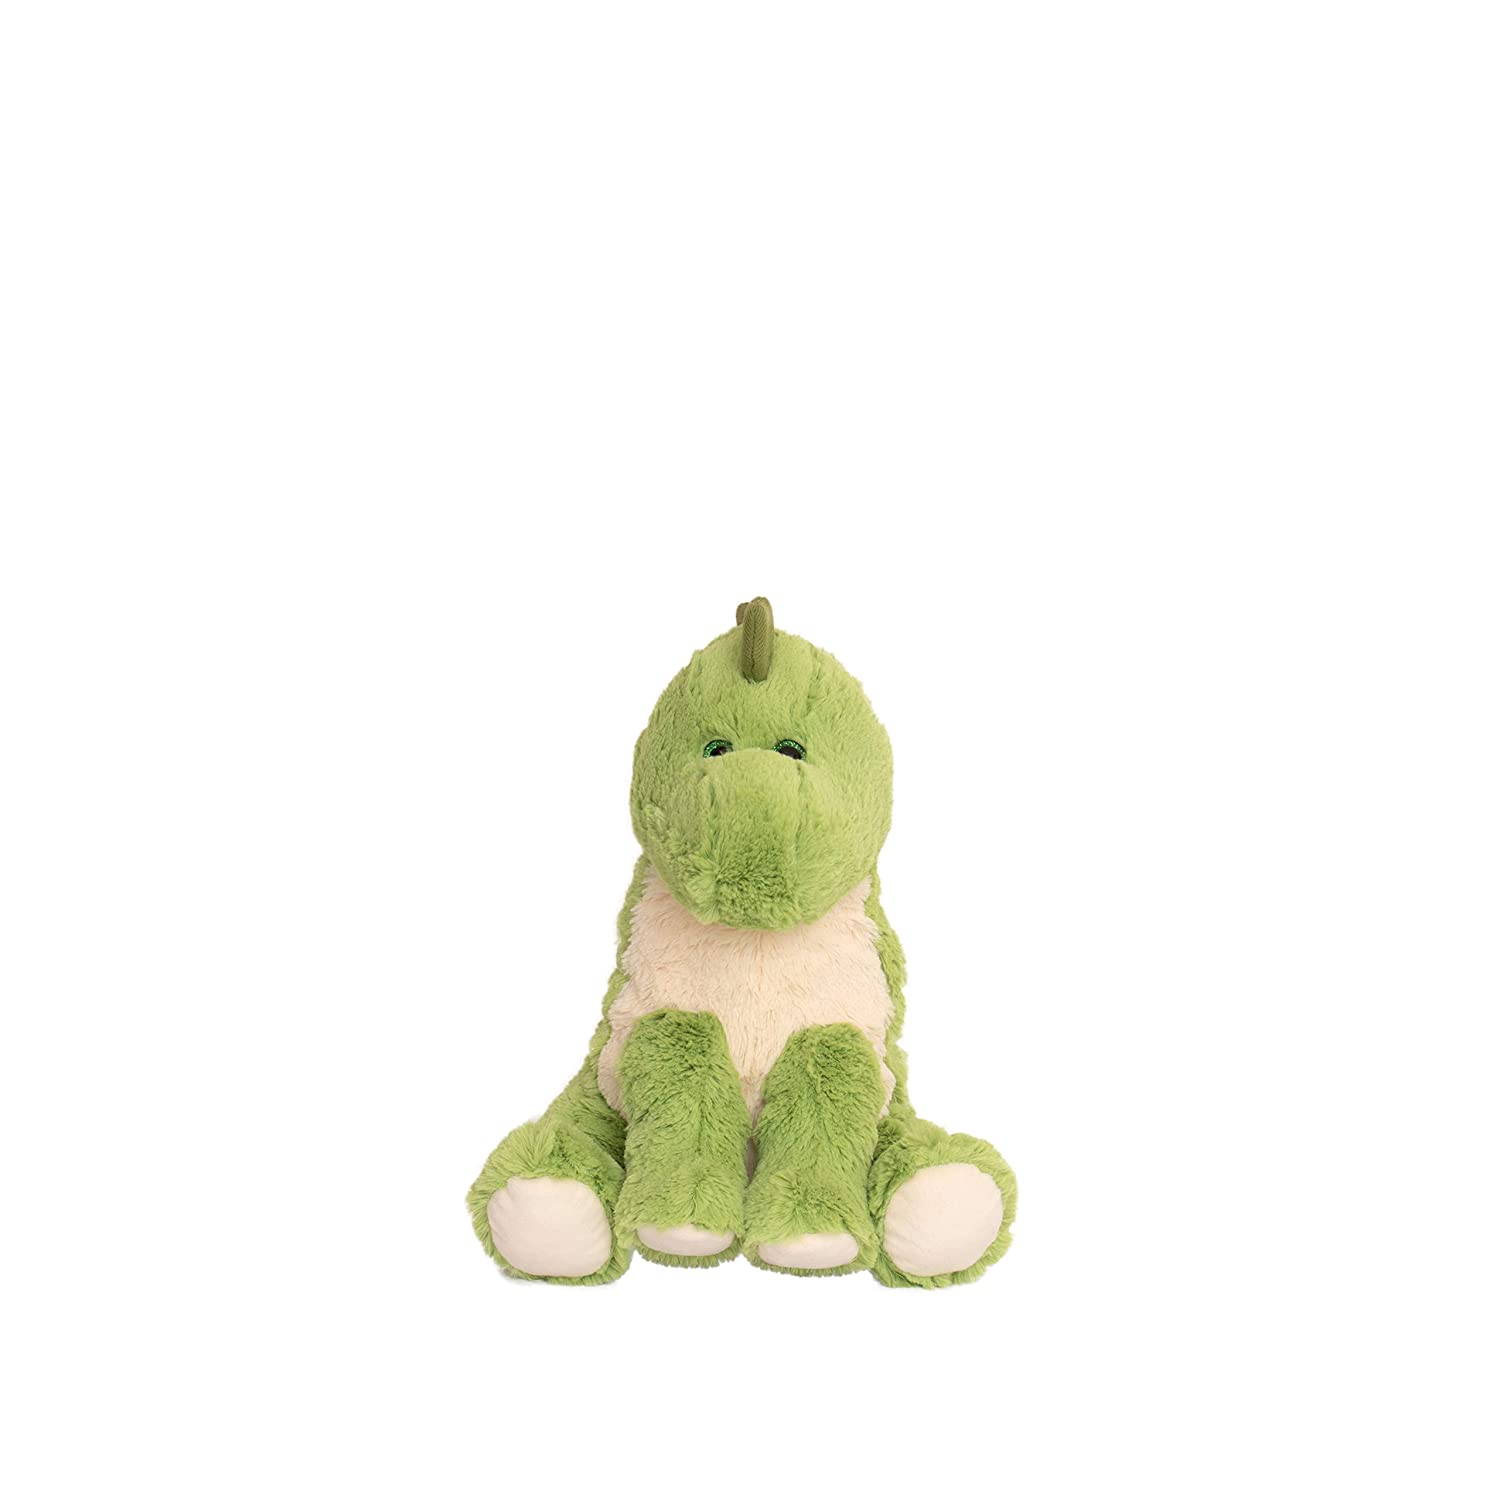 The Hot Water Bottle Shop 1 Litre Deno The Dinosaur Kuddli Friends Hot Water Bottle with Cover